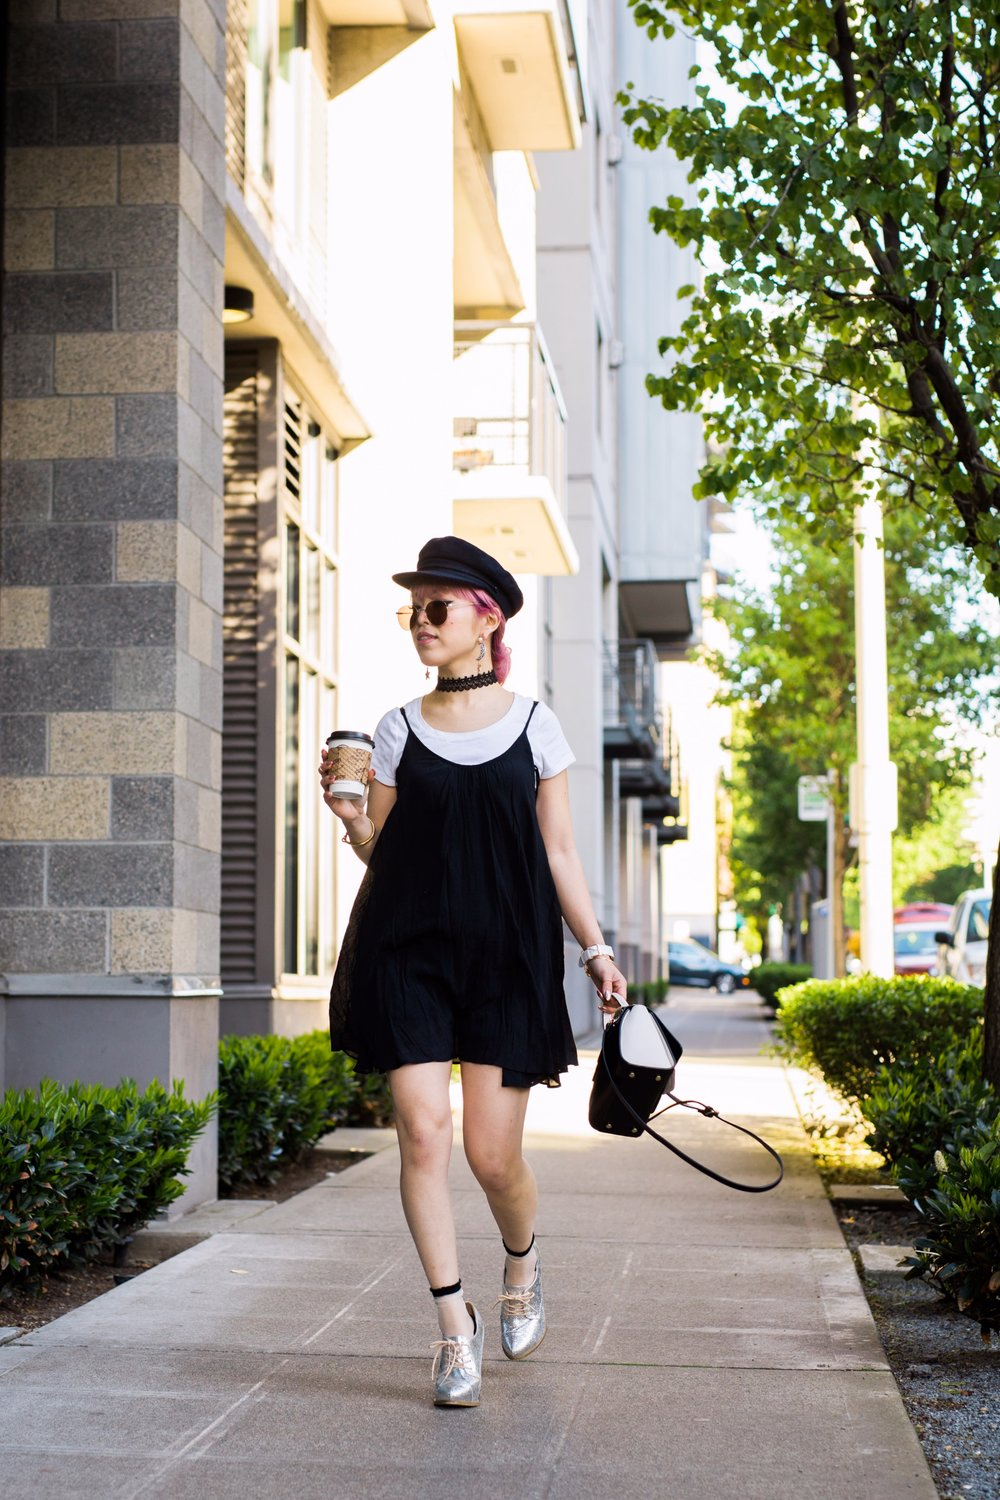 Aritzia News Boy Cap_Polette Retro Round Sunglasses_Mango Moon Star Earrings_Shopdixi Lace Choker_Forever 21 White Tee_Urban Outfitters Little Black Dress_Zara Bag_Sheer ankle Socks_ASOS Glitter Block heels Shoes_Aikas Love Closet_Seattle Fashion Blogger_Japanese_Pink hair 6